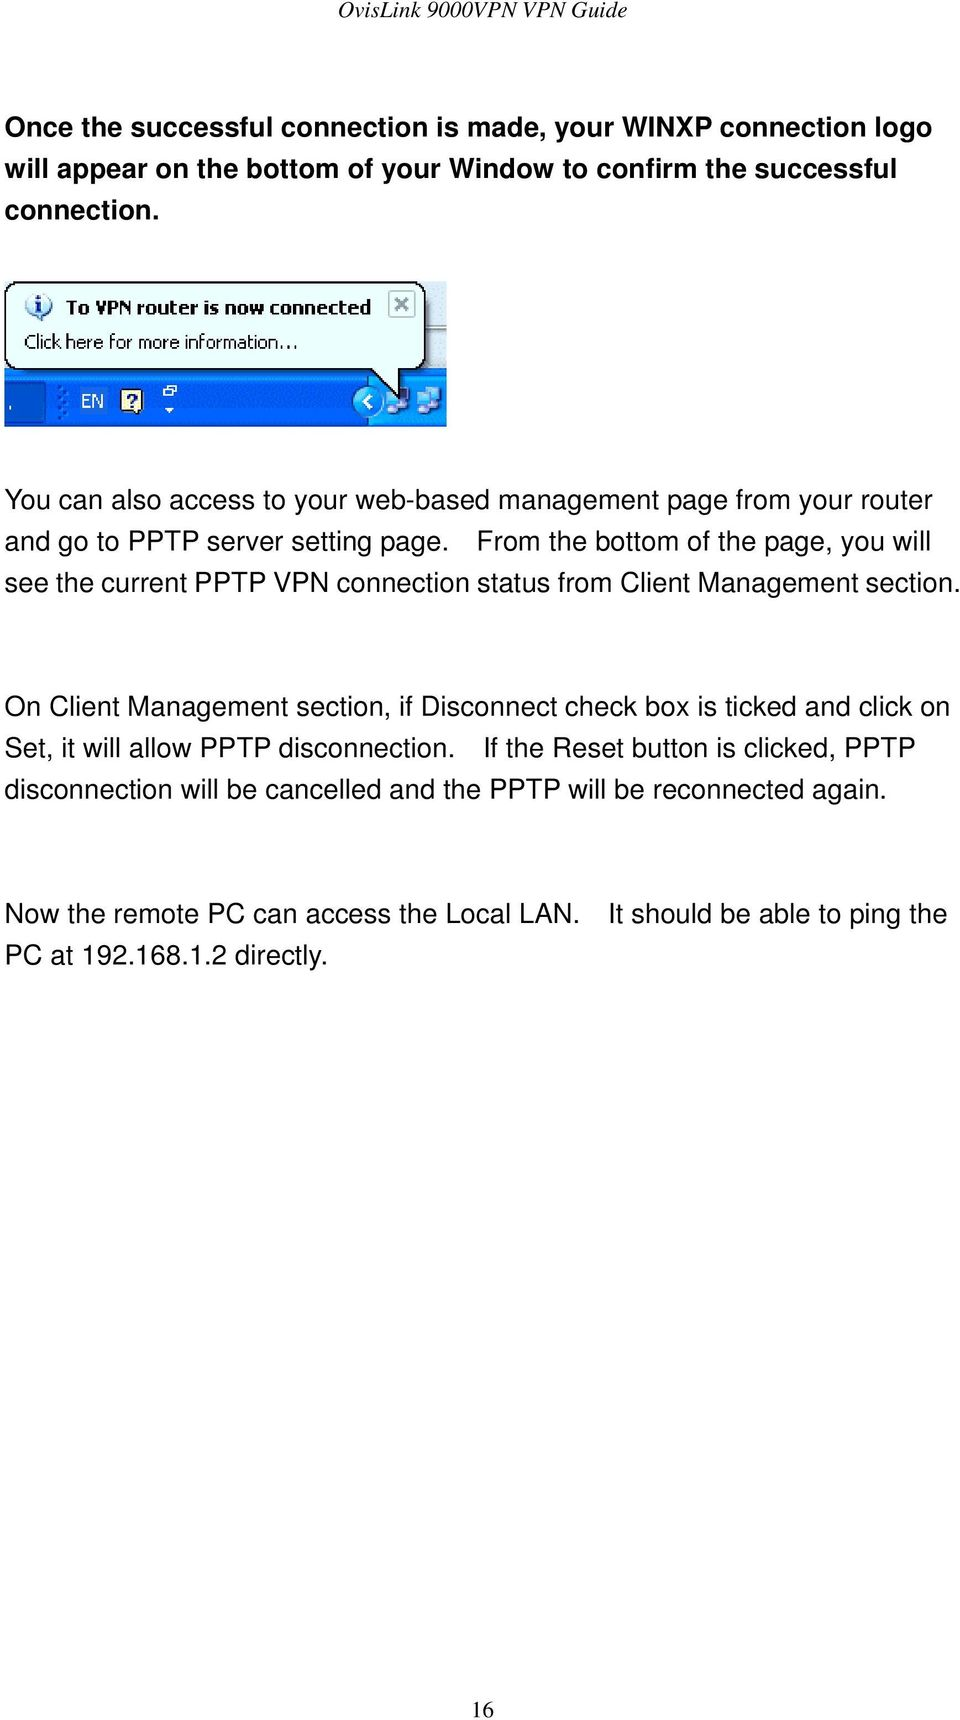 From the bottom of the page, you will see the current PPTP VPN connection status from Client Management section.